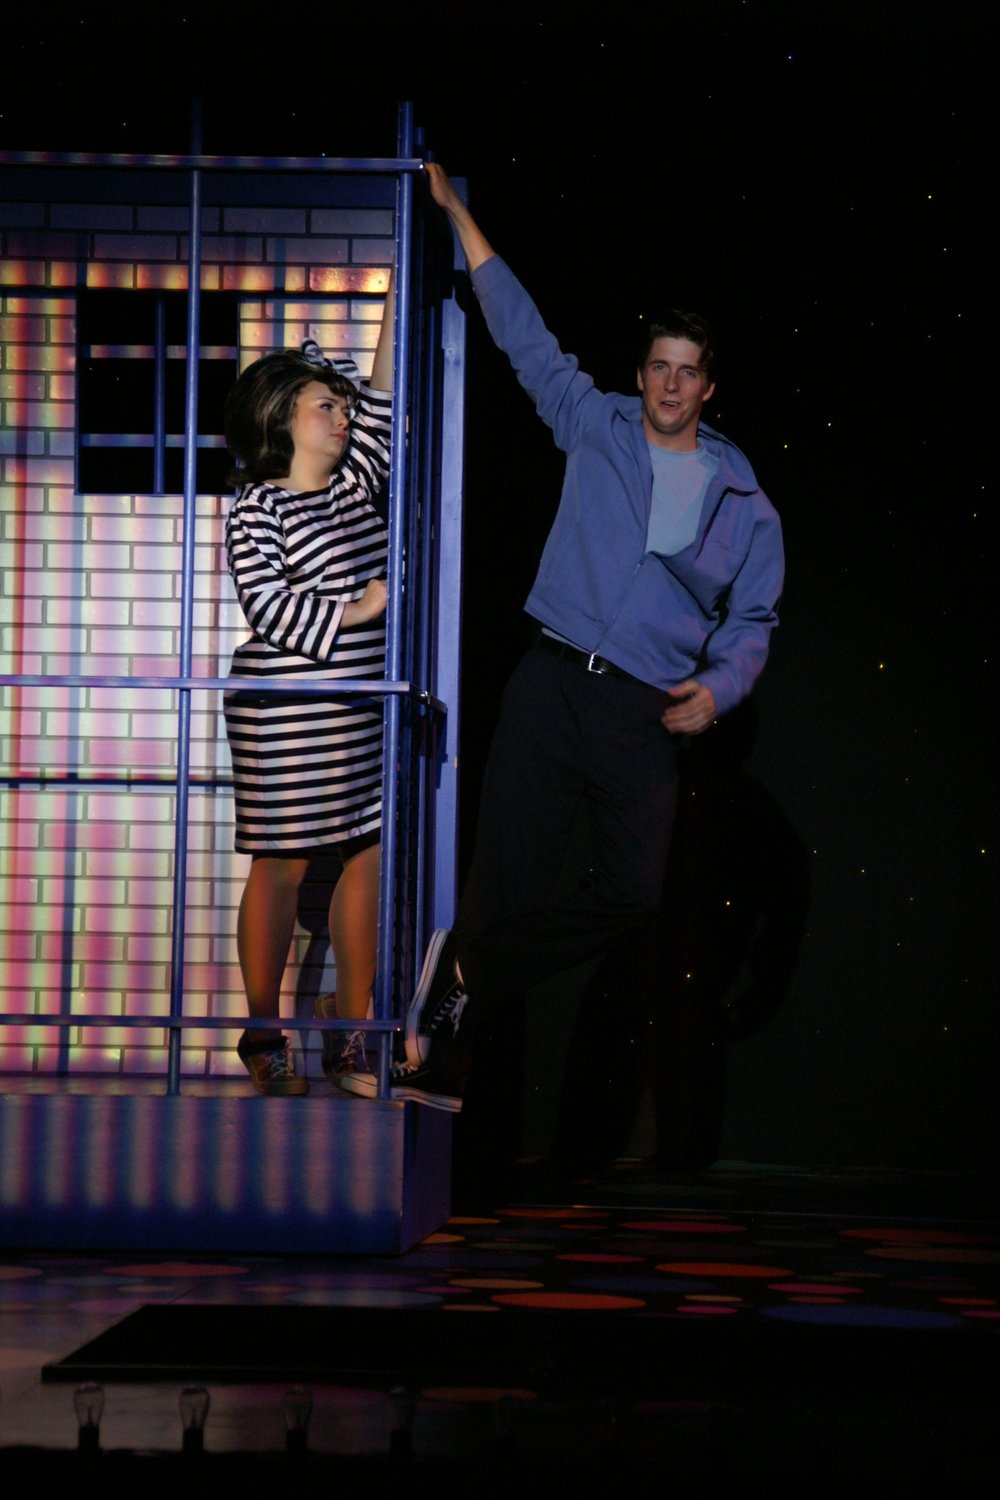 Alison-Faircloth-as-Tracy-Turnblad-with-Colin-Campbell-as-Link-Larkin-in-The-Big-Dollhouse.jpg